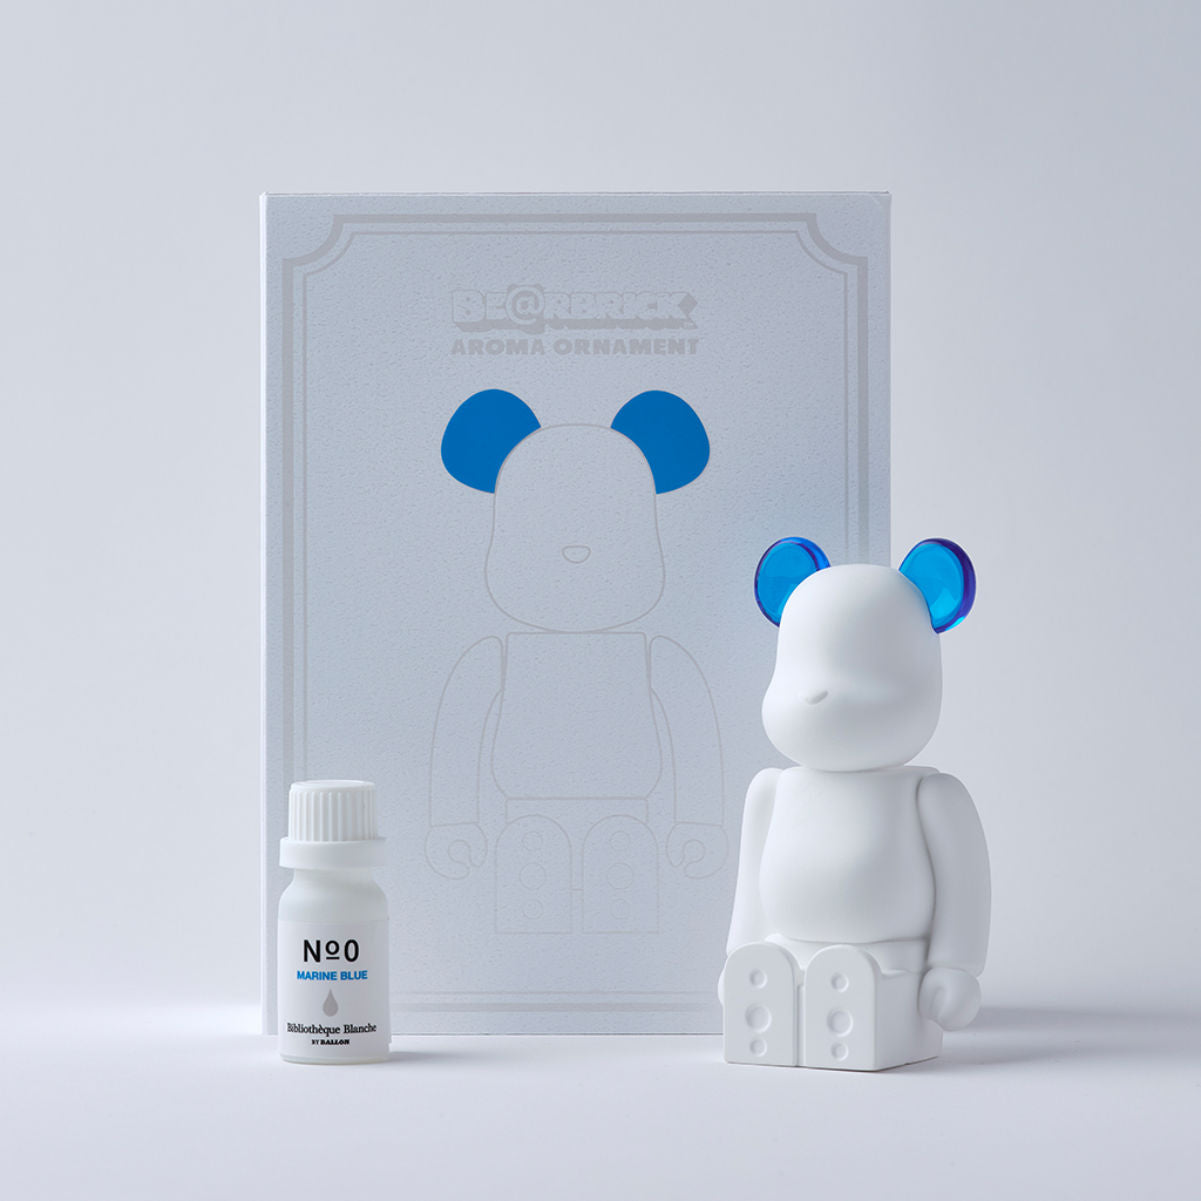 Bibliotheque Blanche x Medicom BE@RBRICK Aroma Ornament #0 blue